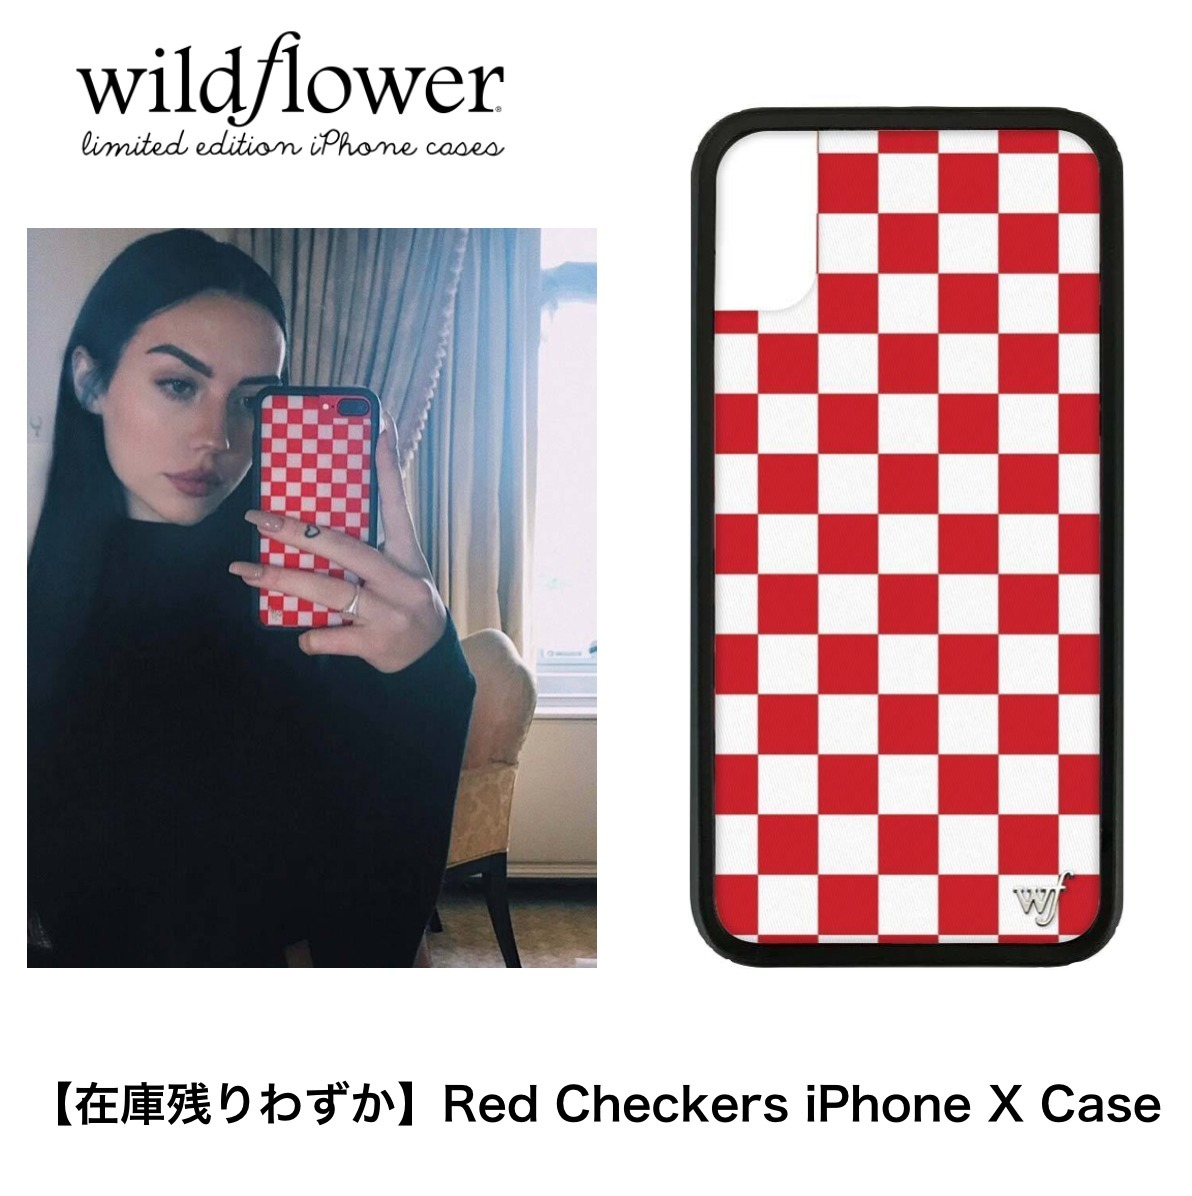 ★在庫残りわずか★【Wildflower】Red Checkers iPhone X ケース